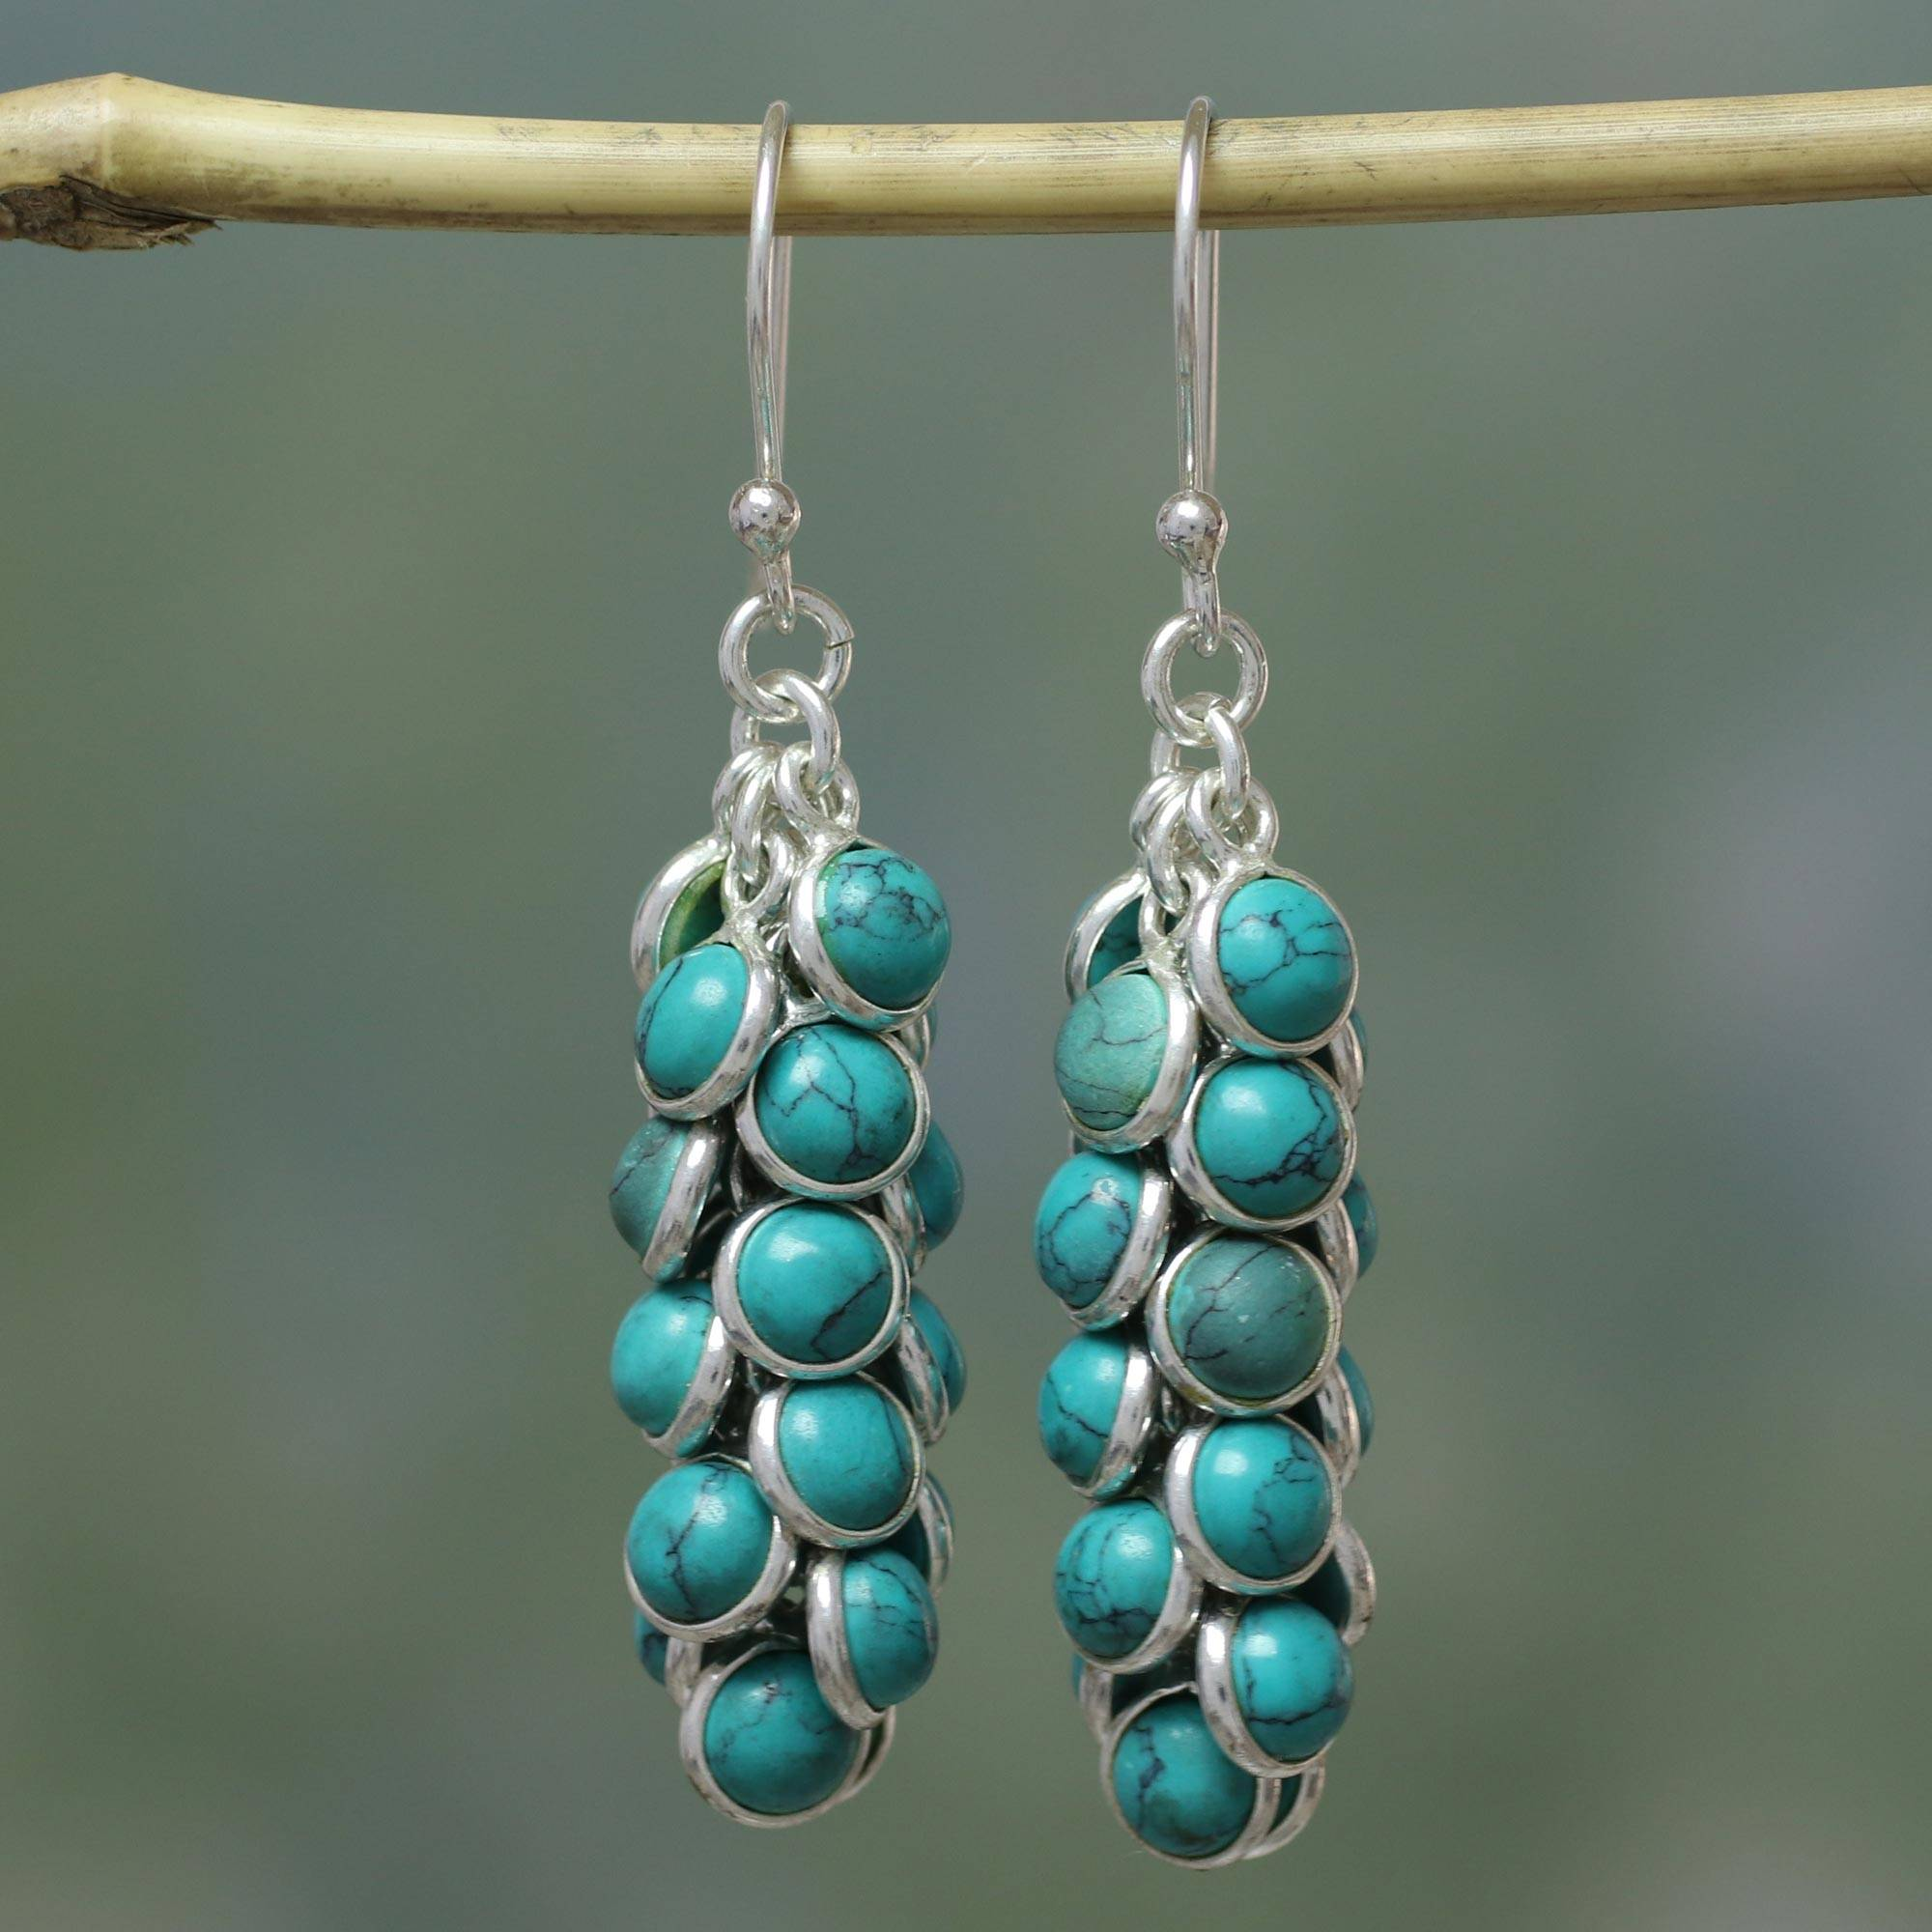 df6d51e1f UNICEF Market | Handcrafted Turquoise and Sterling Silver Waterfall ...